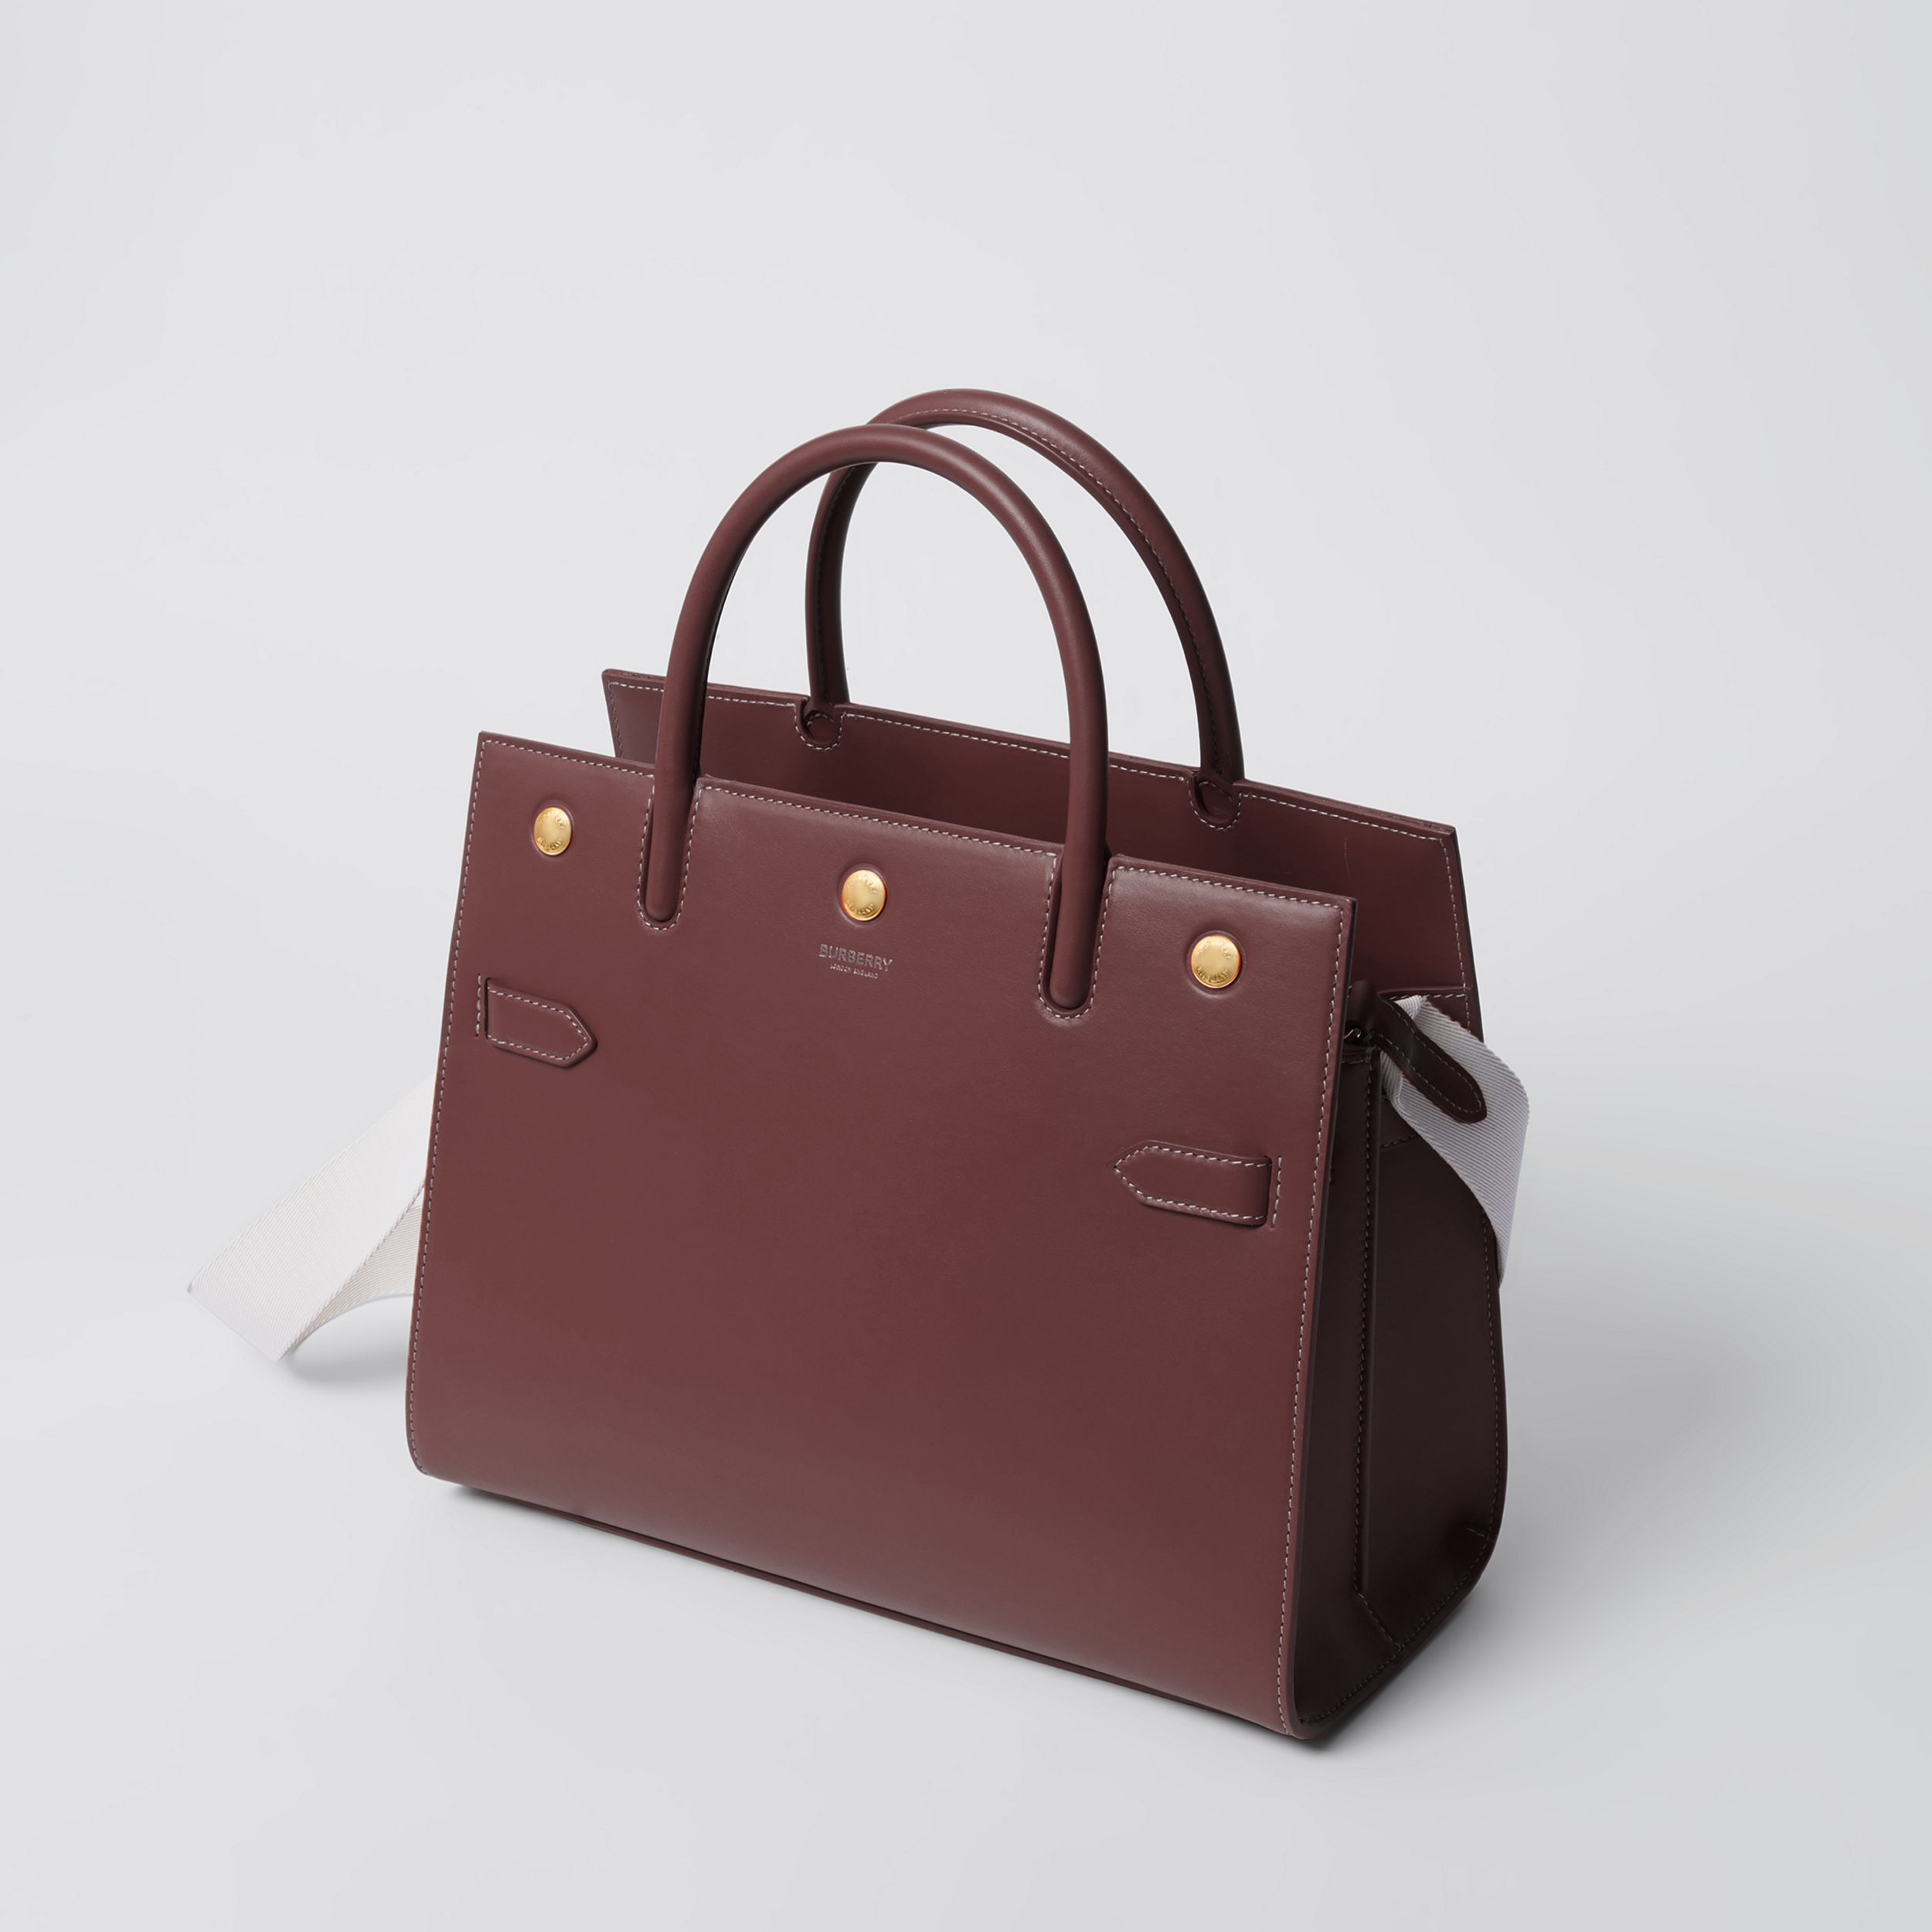 Medium Leather Two-handle Title Bag in Garnet - Women | Burberry - 3